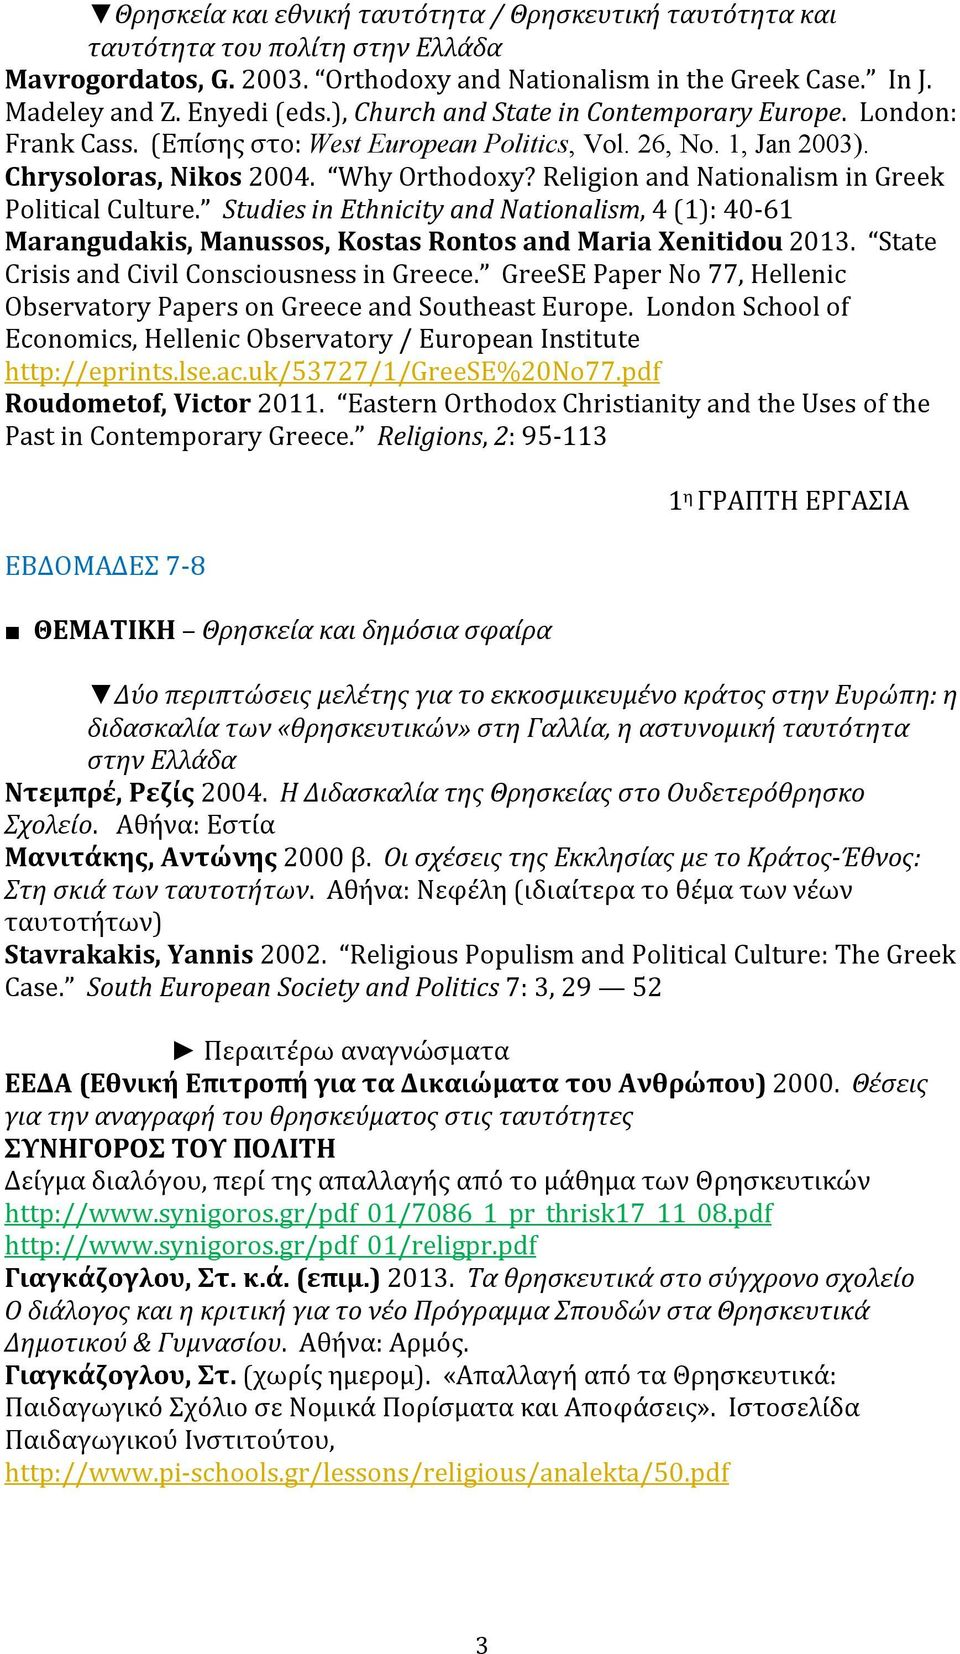 Religion and Nationalism in Greek Political Culture. Studies in Ethnicity and Nationalism, 4 (1): 40-61 Marangudakis, Manussos, Kostas Rontos and Maria Xenitidou 2013.